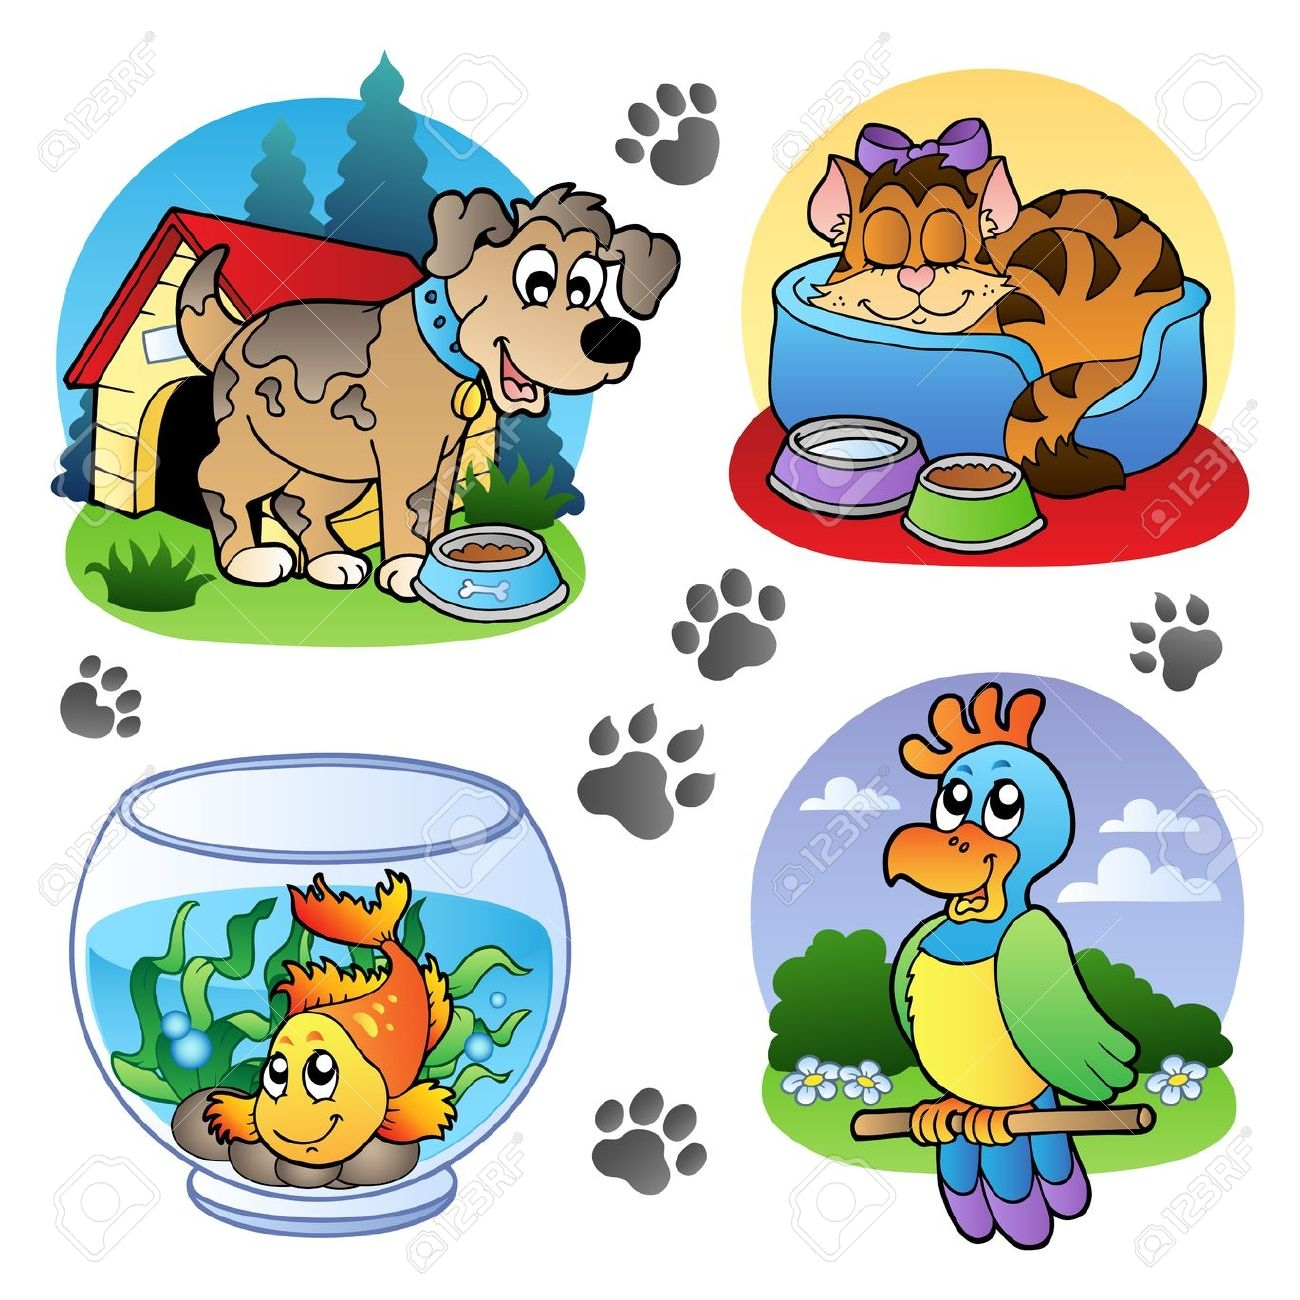 pet bowl: Various pets images